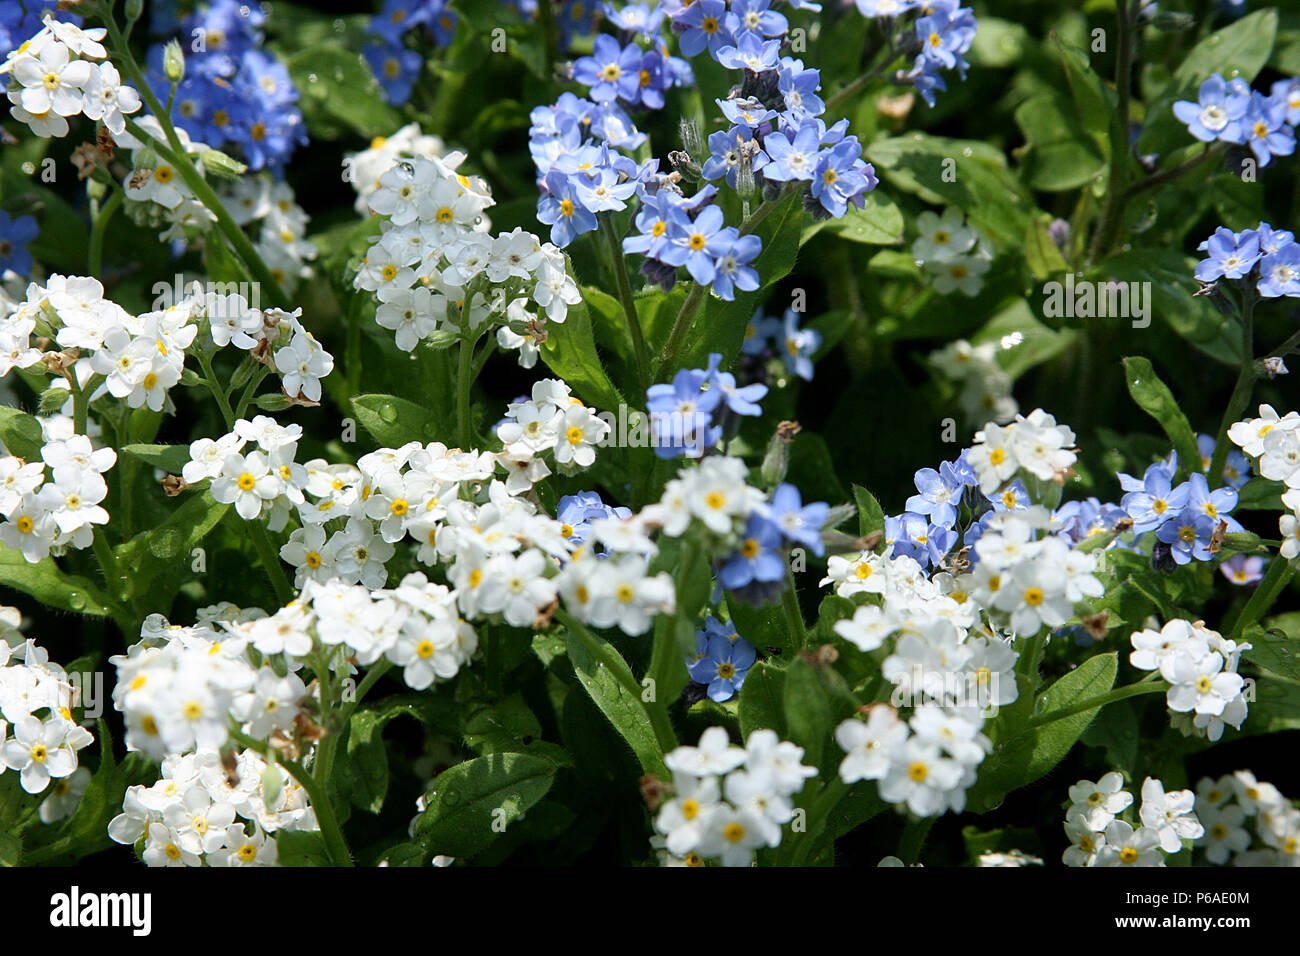 White And Blue Forget Me Not Flowers Stock Photo 210442868 Alamy